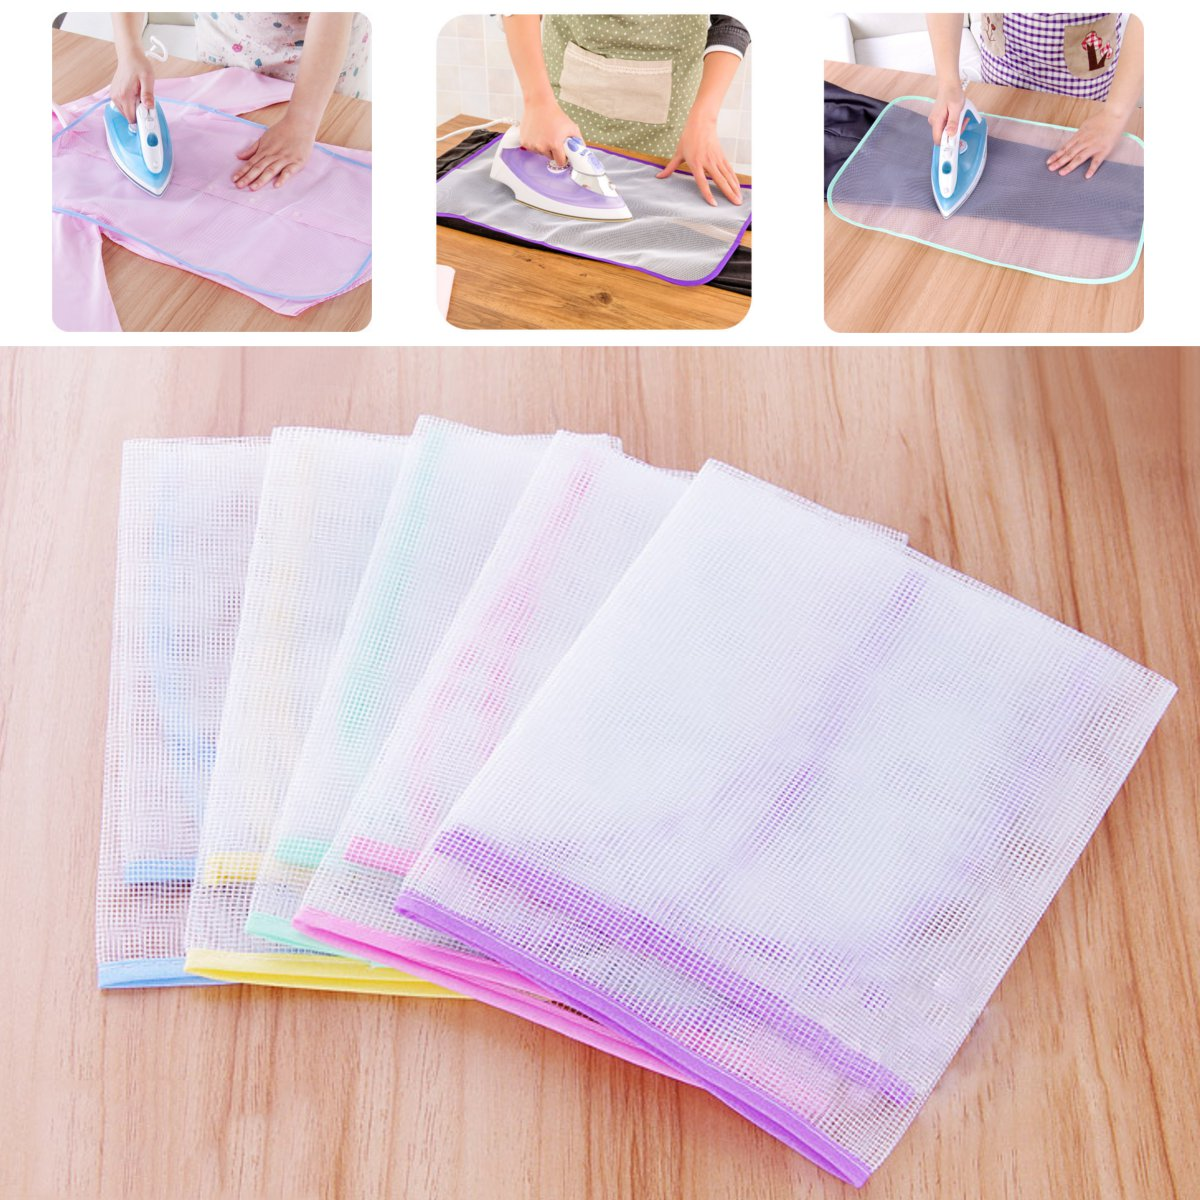 Protective Press Wire Mesh Ironing Delicate Garment Clothes Ironing Board Cover Mesh Cloth